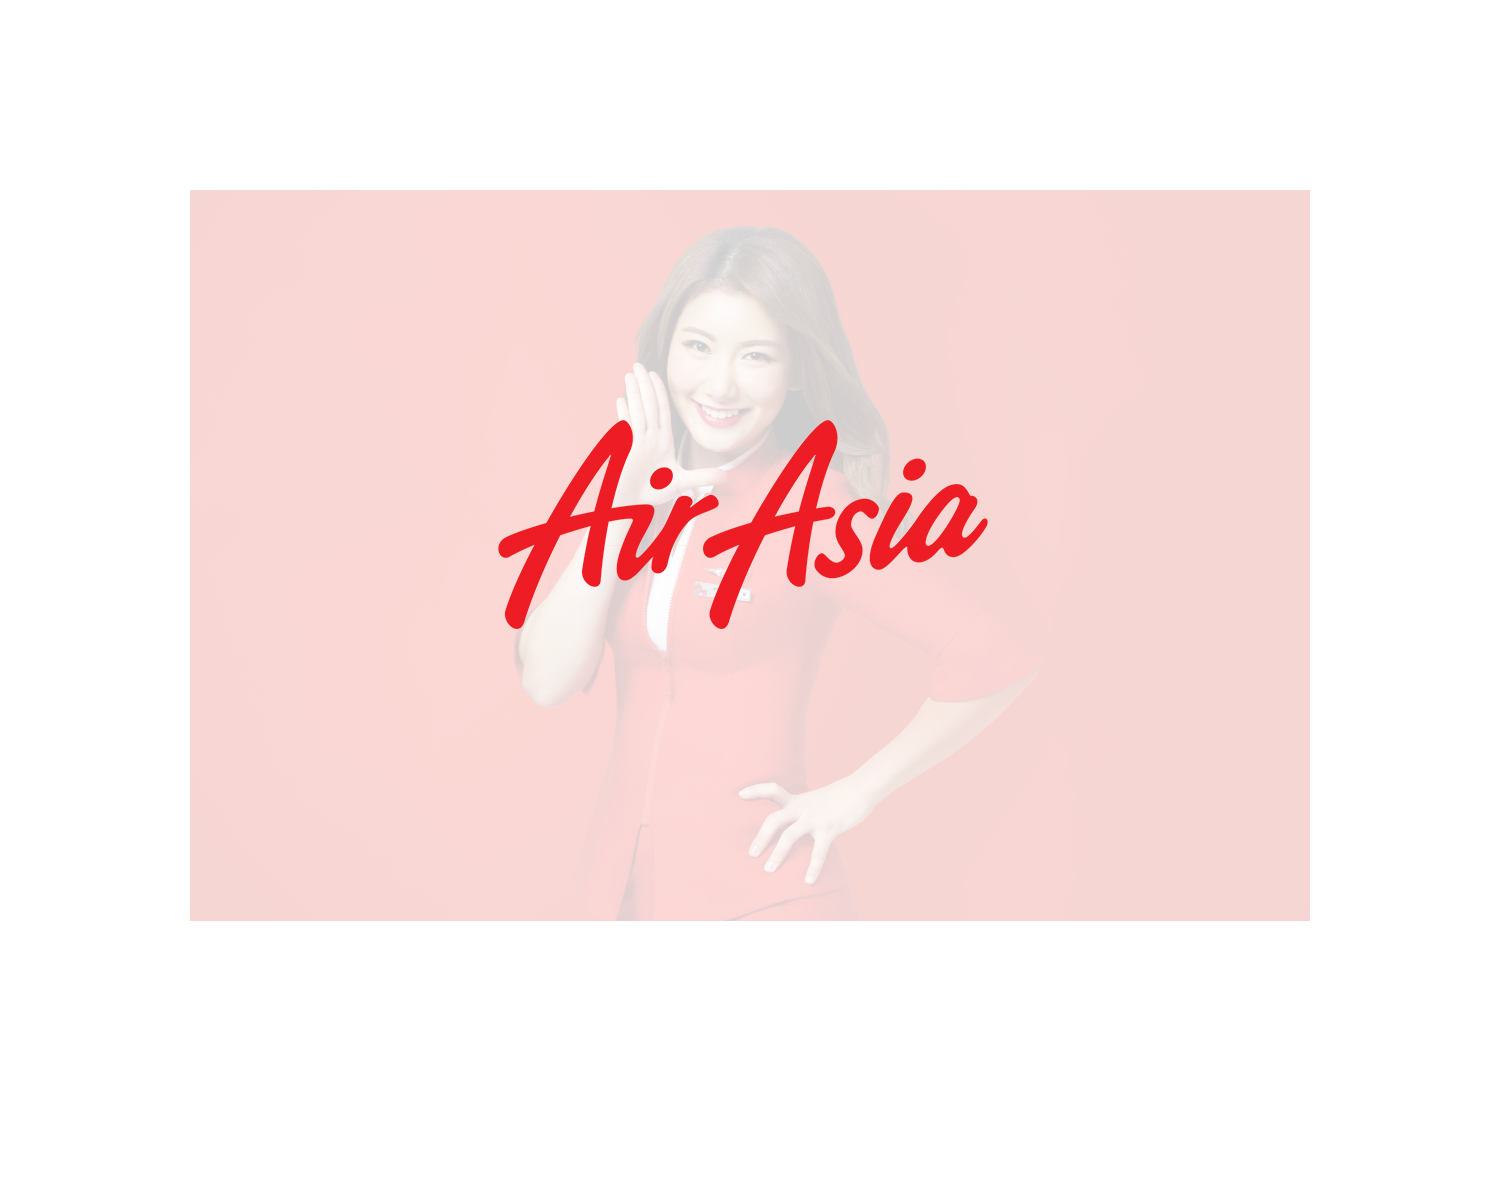 THIS IS HOW AIRASIA IS FIGHTING AIDS